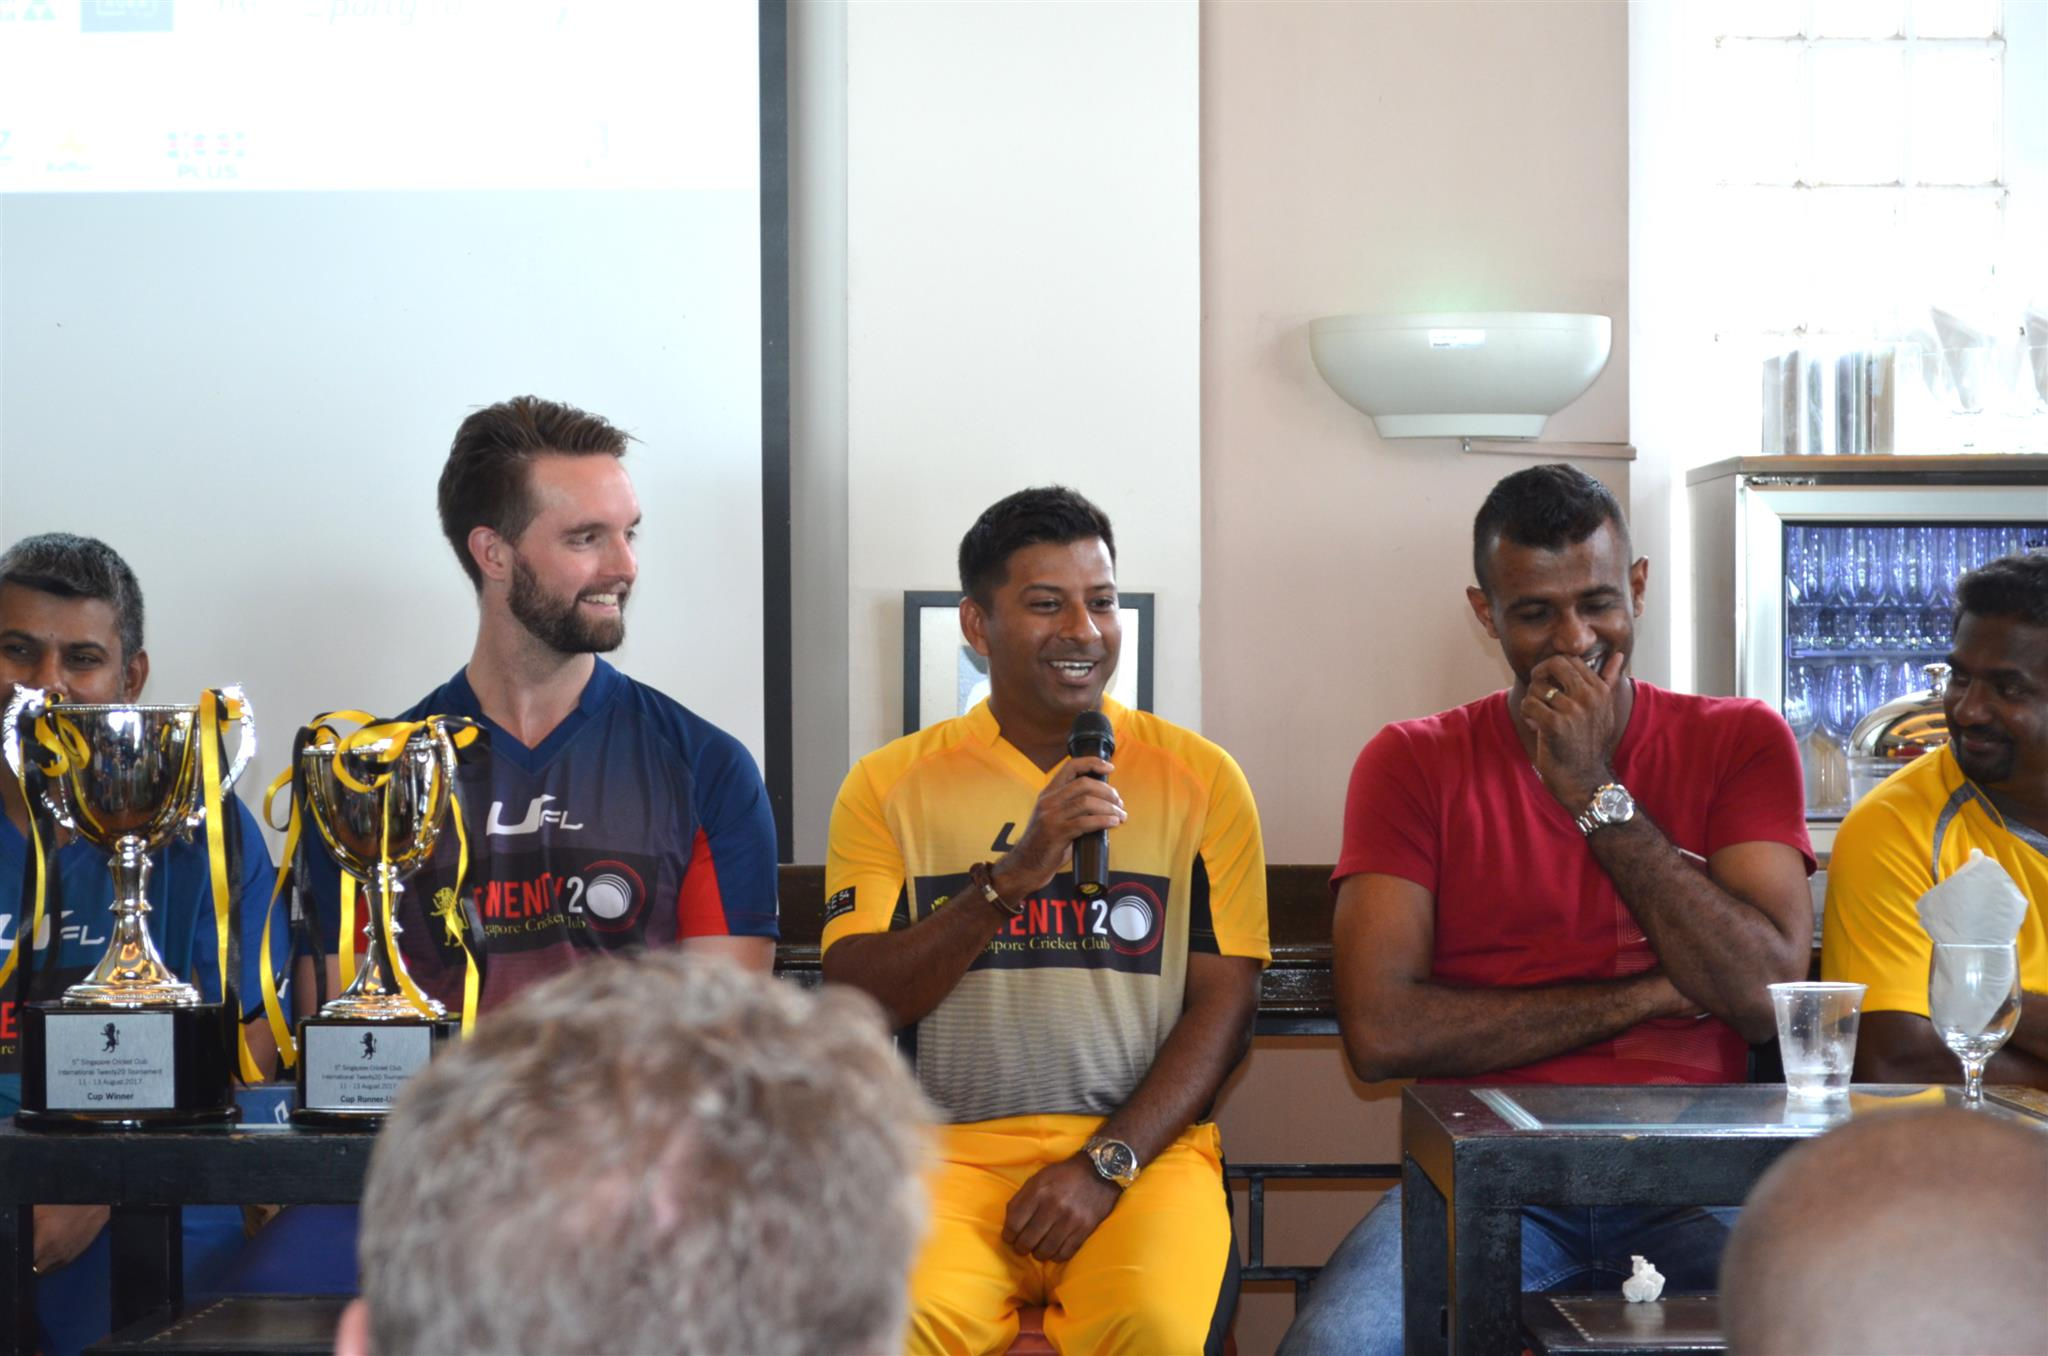 Muttiah Muralitharan (right) and Ferveez Maharoof (2nd right) laugh as SCC captain Riaz Hussein makes a joke about forgetting his well prepared game plan as soon as he met the two aces. Melbourne captain Matthew Brown (left) is also seen.